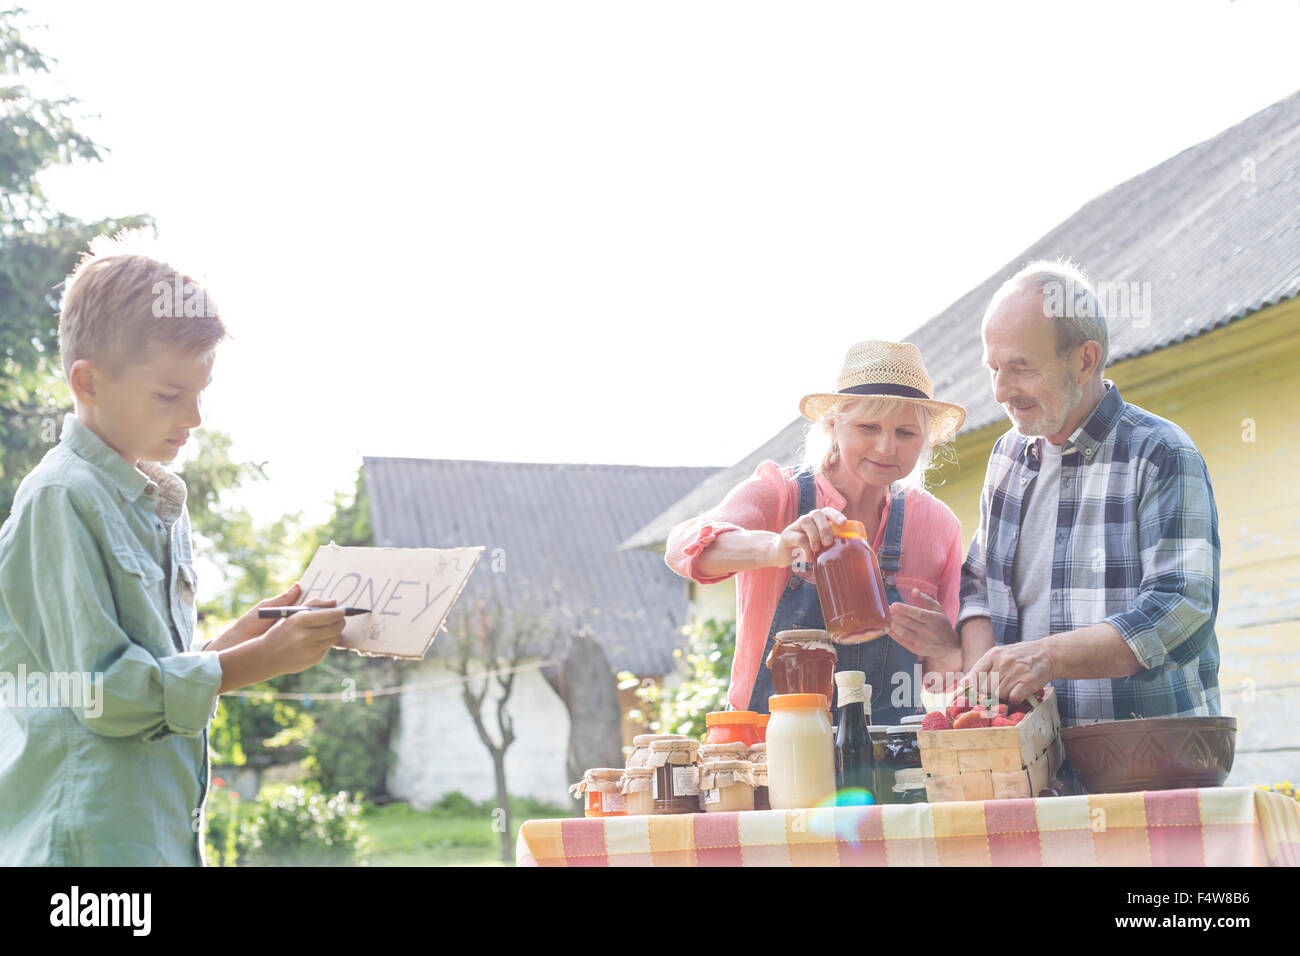 Grandparents and grandson preparing to sell honey - Stock Image